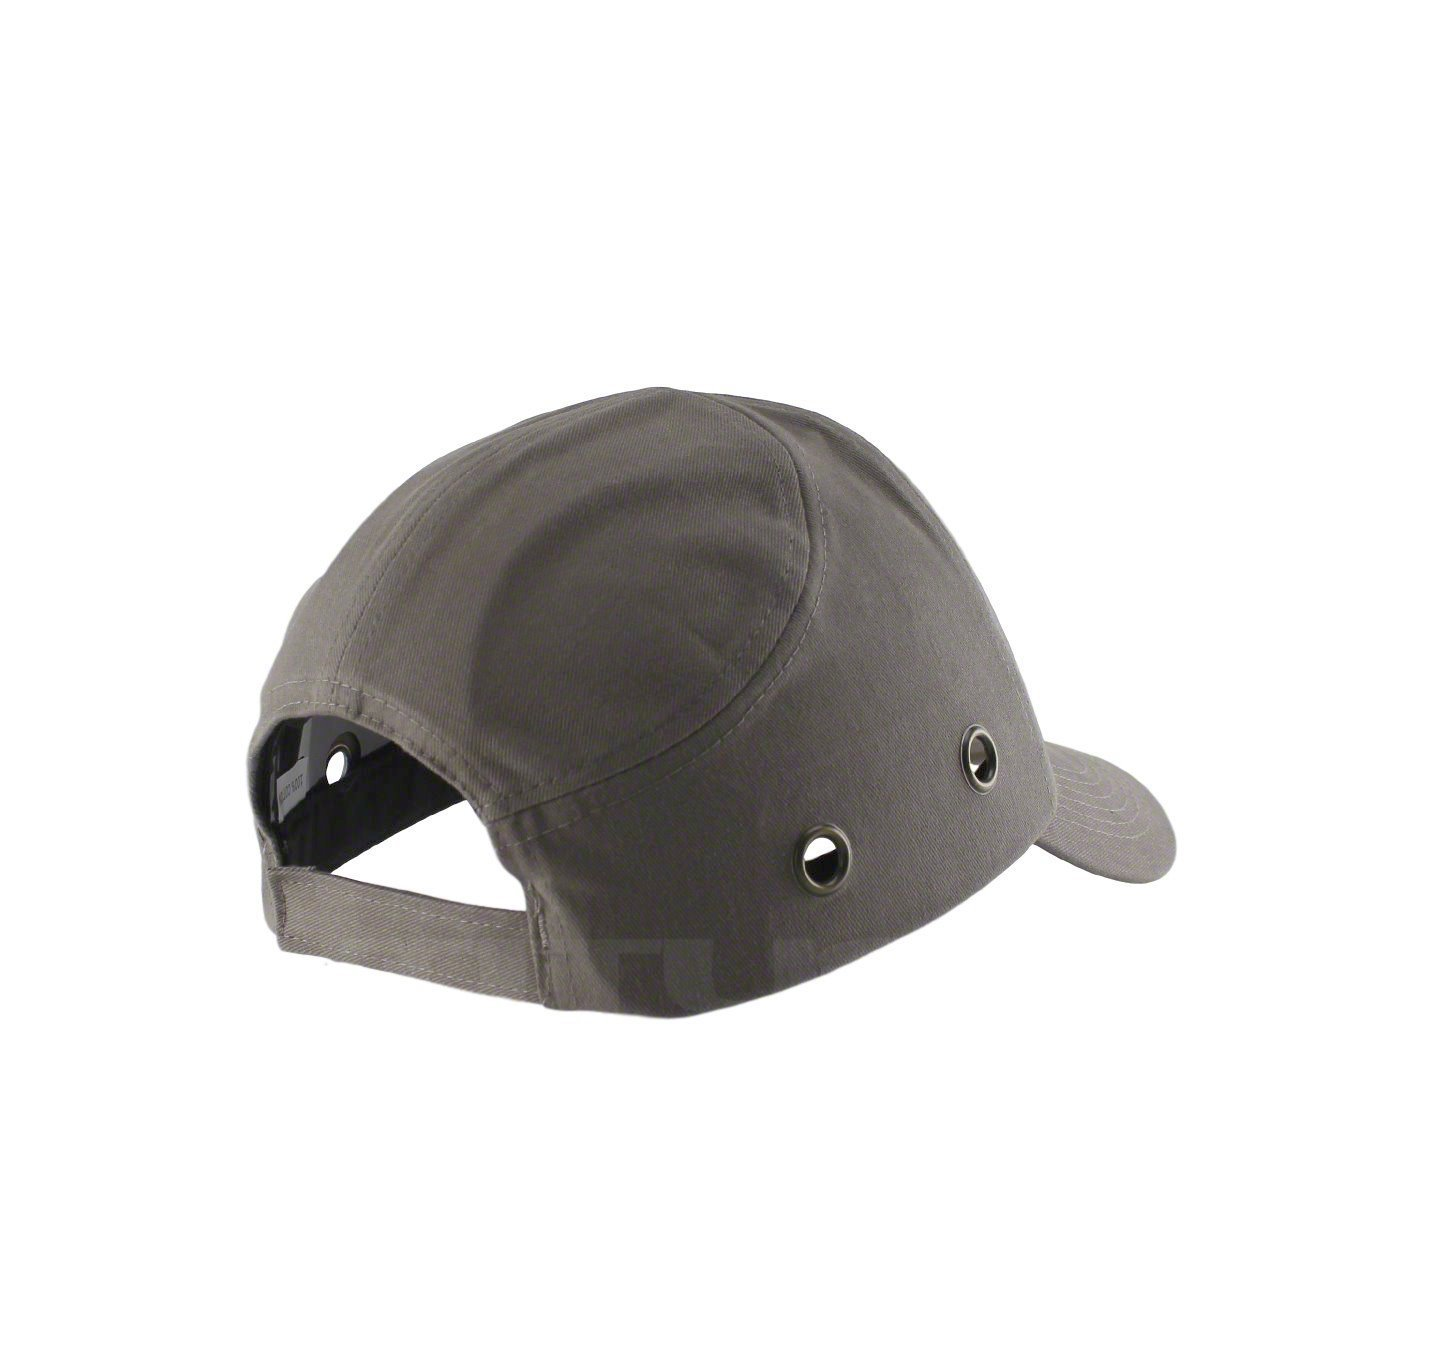 Titus Lightweight Safety Bump Cap - Baseball Style Protective Hat (Grey) by Titus (Image #3)